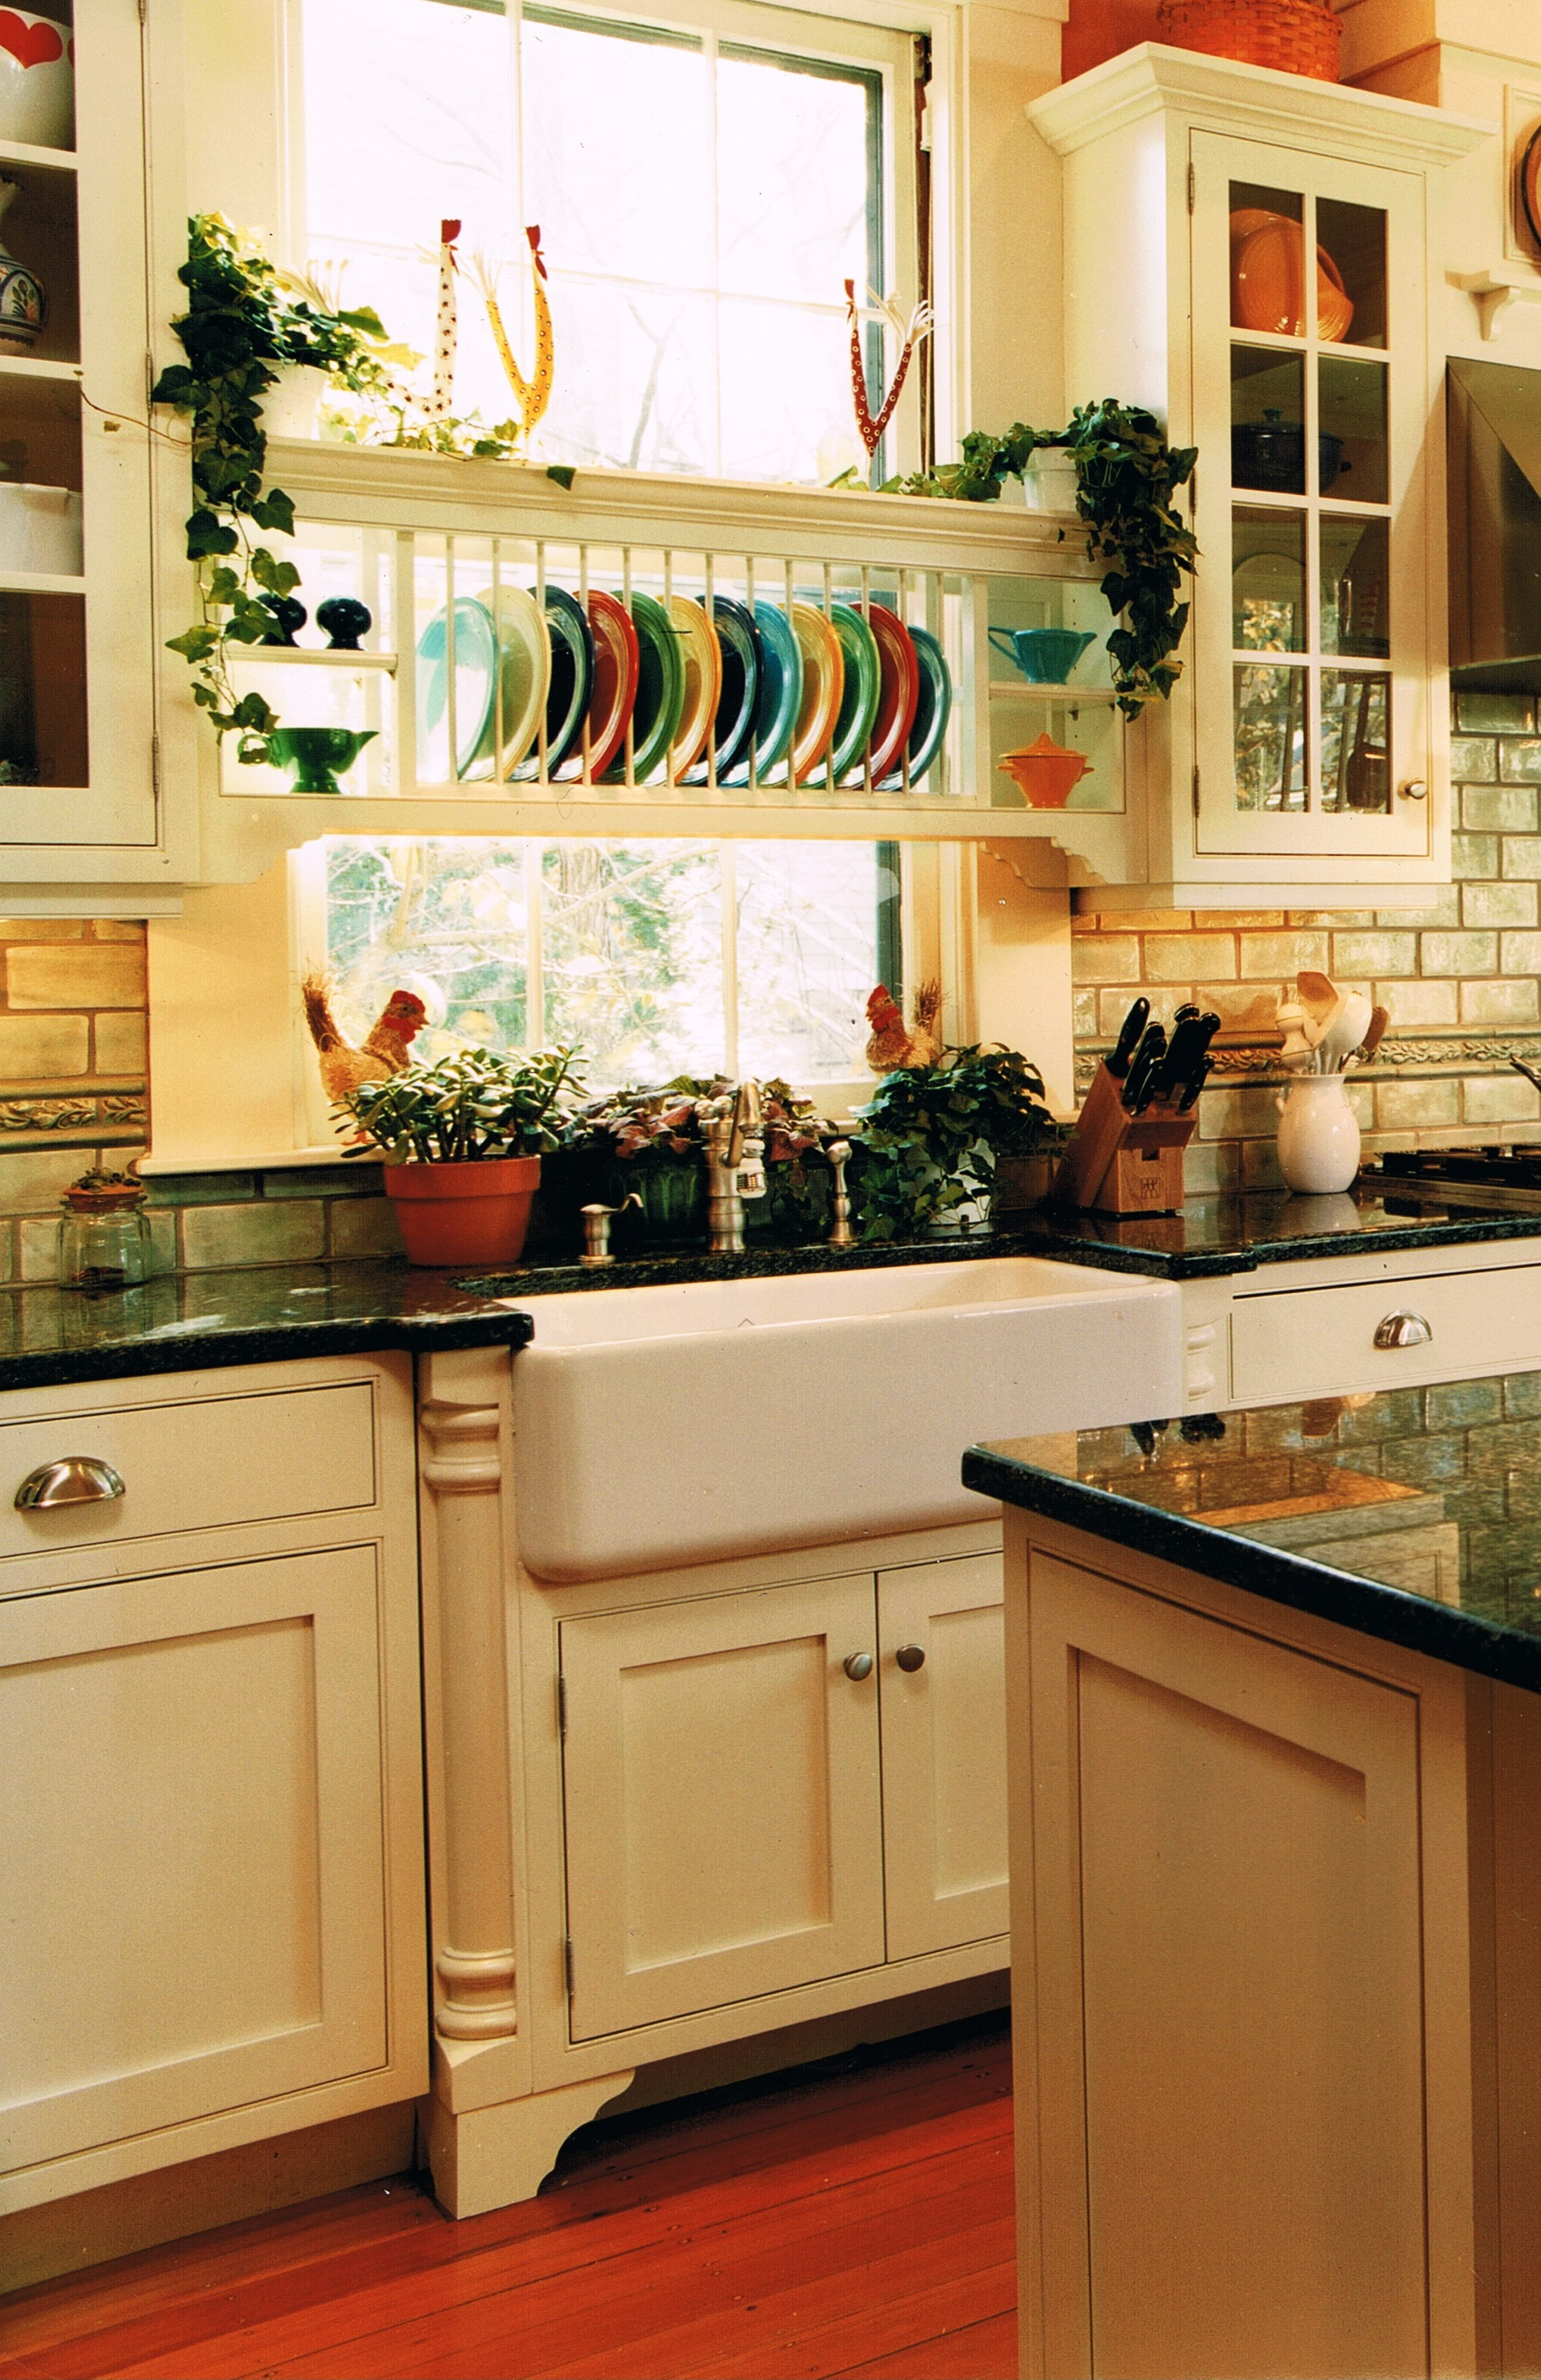 Apron Front Sink With Backsplash : farmhouse sinks as called apron sinks are chosen for their charm and ...